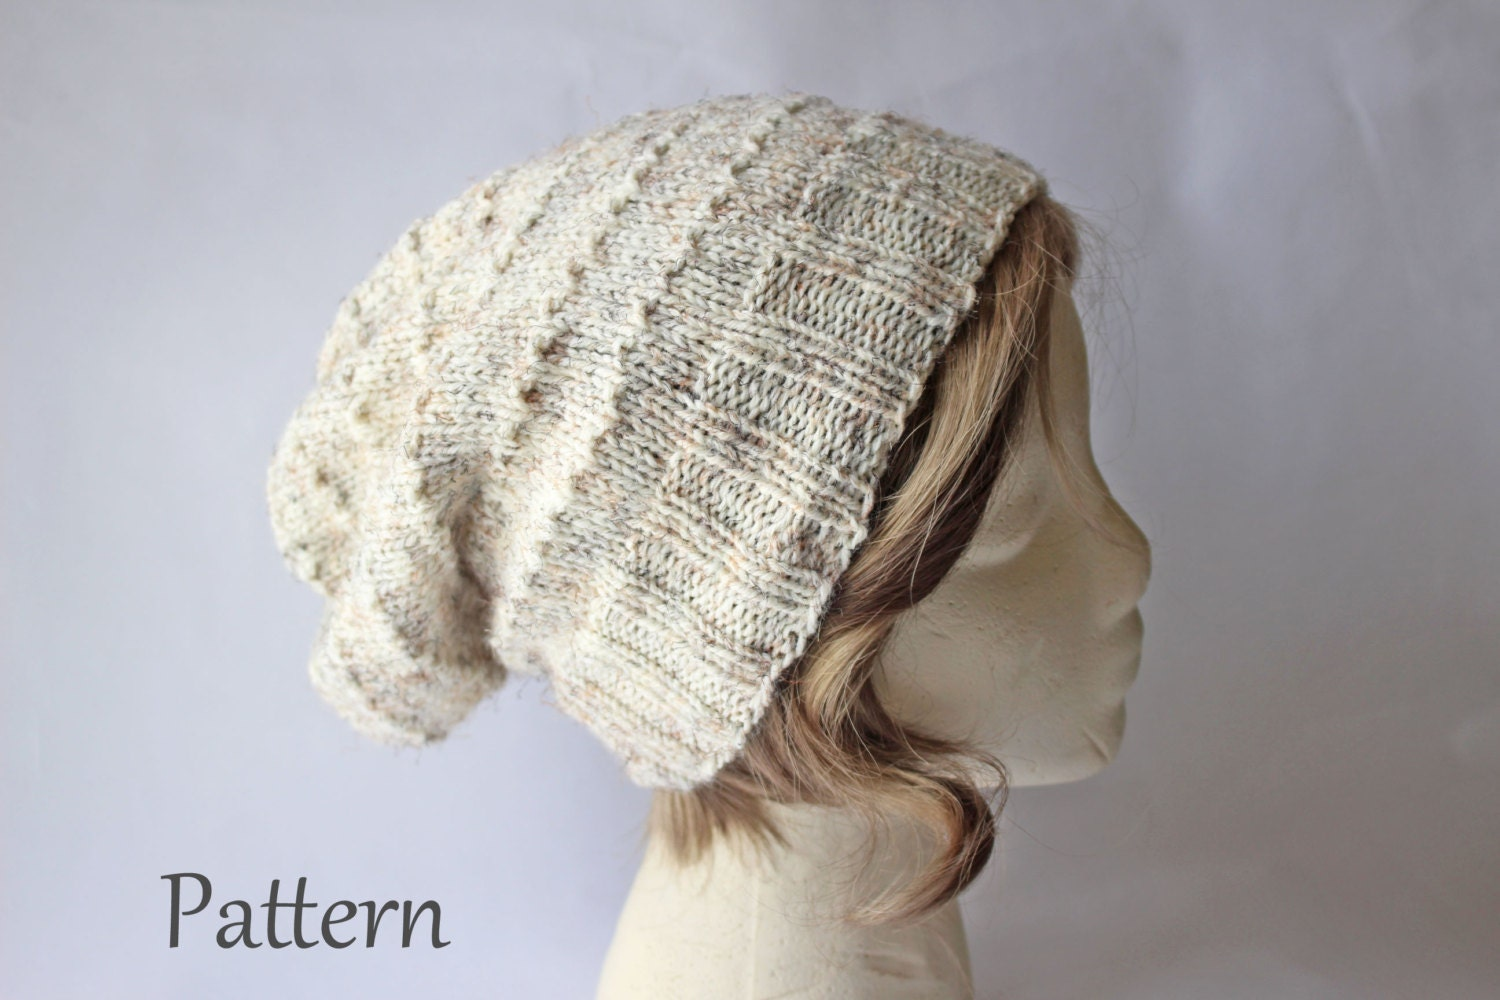 Free Knitting Patterns For Dogs Sweater : Knitting Pattern Urban Slouch Knit Beanie Hat Pattern